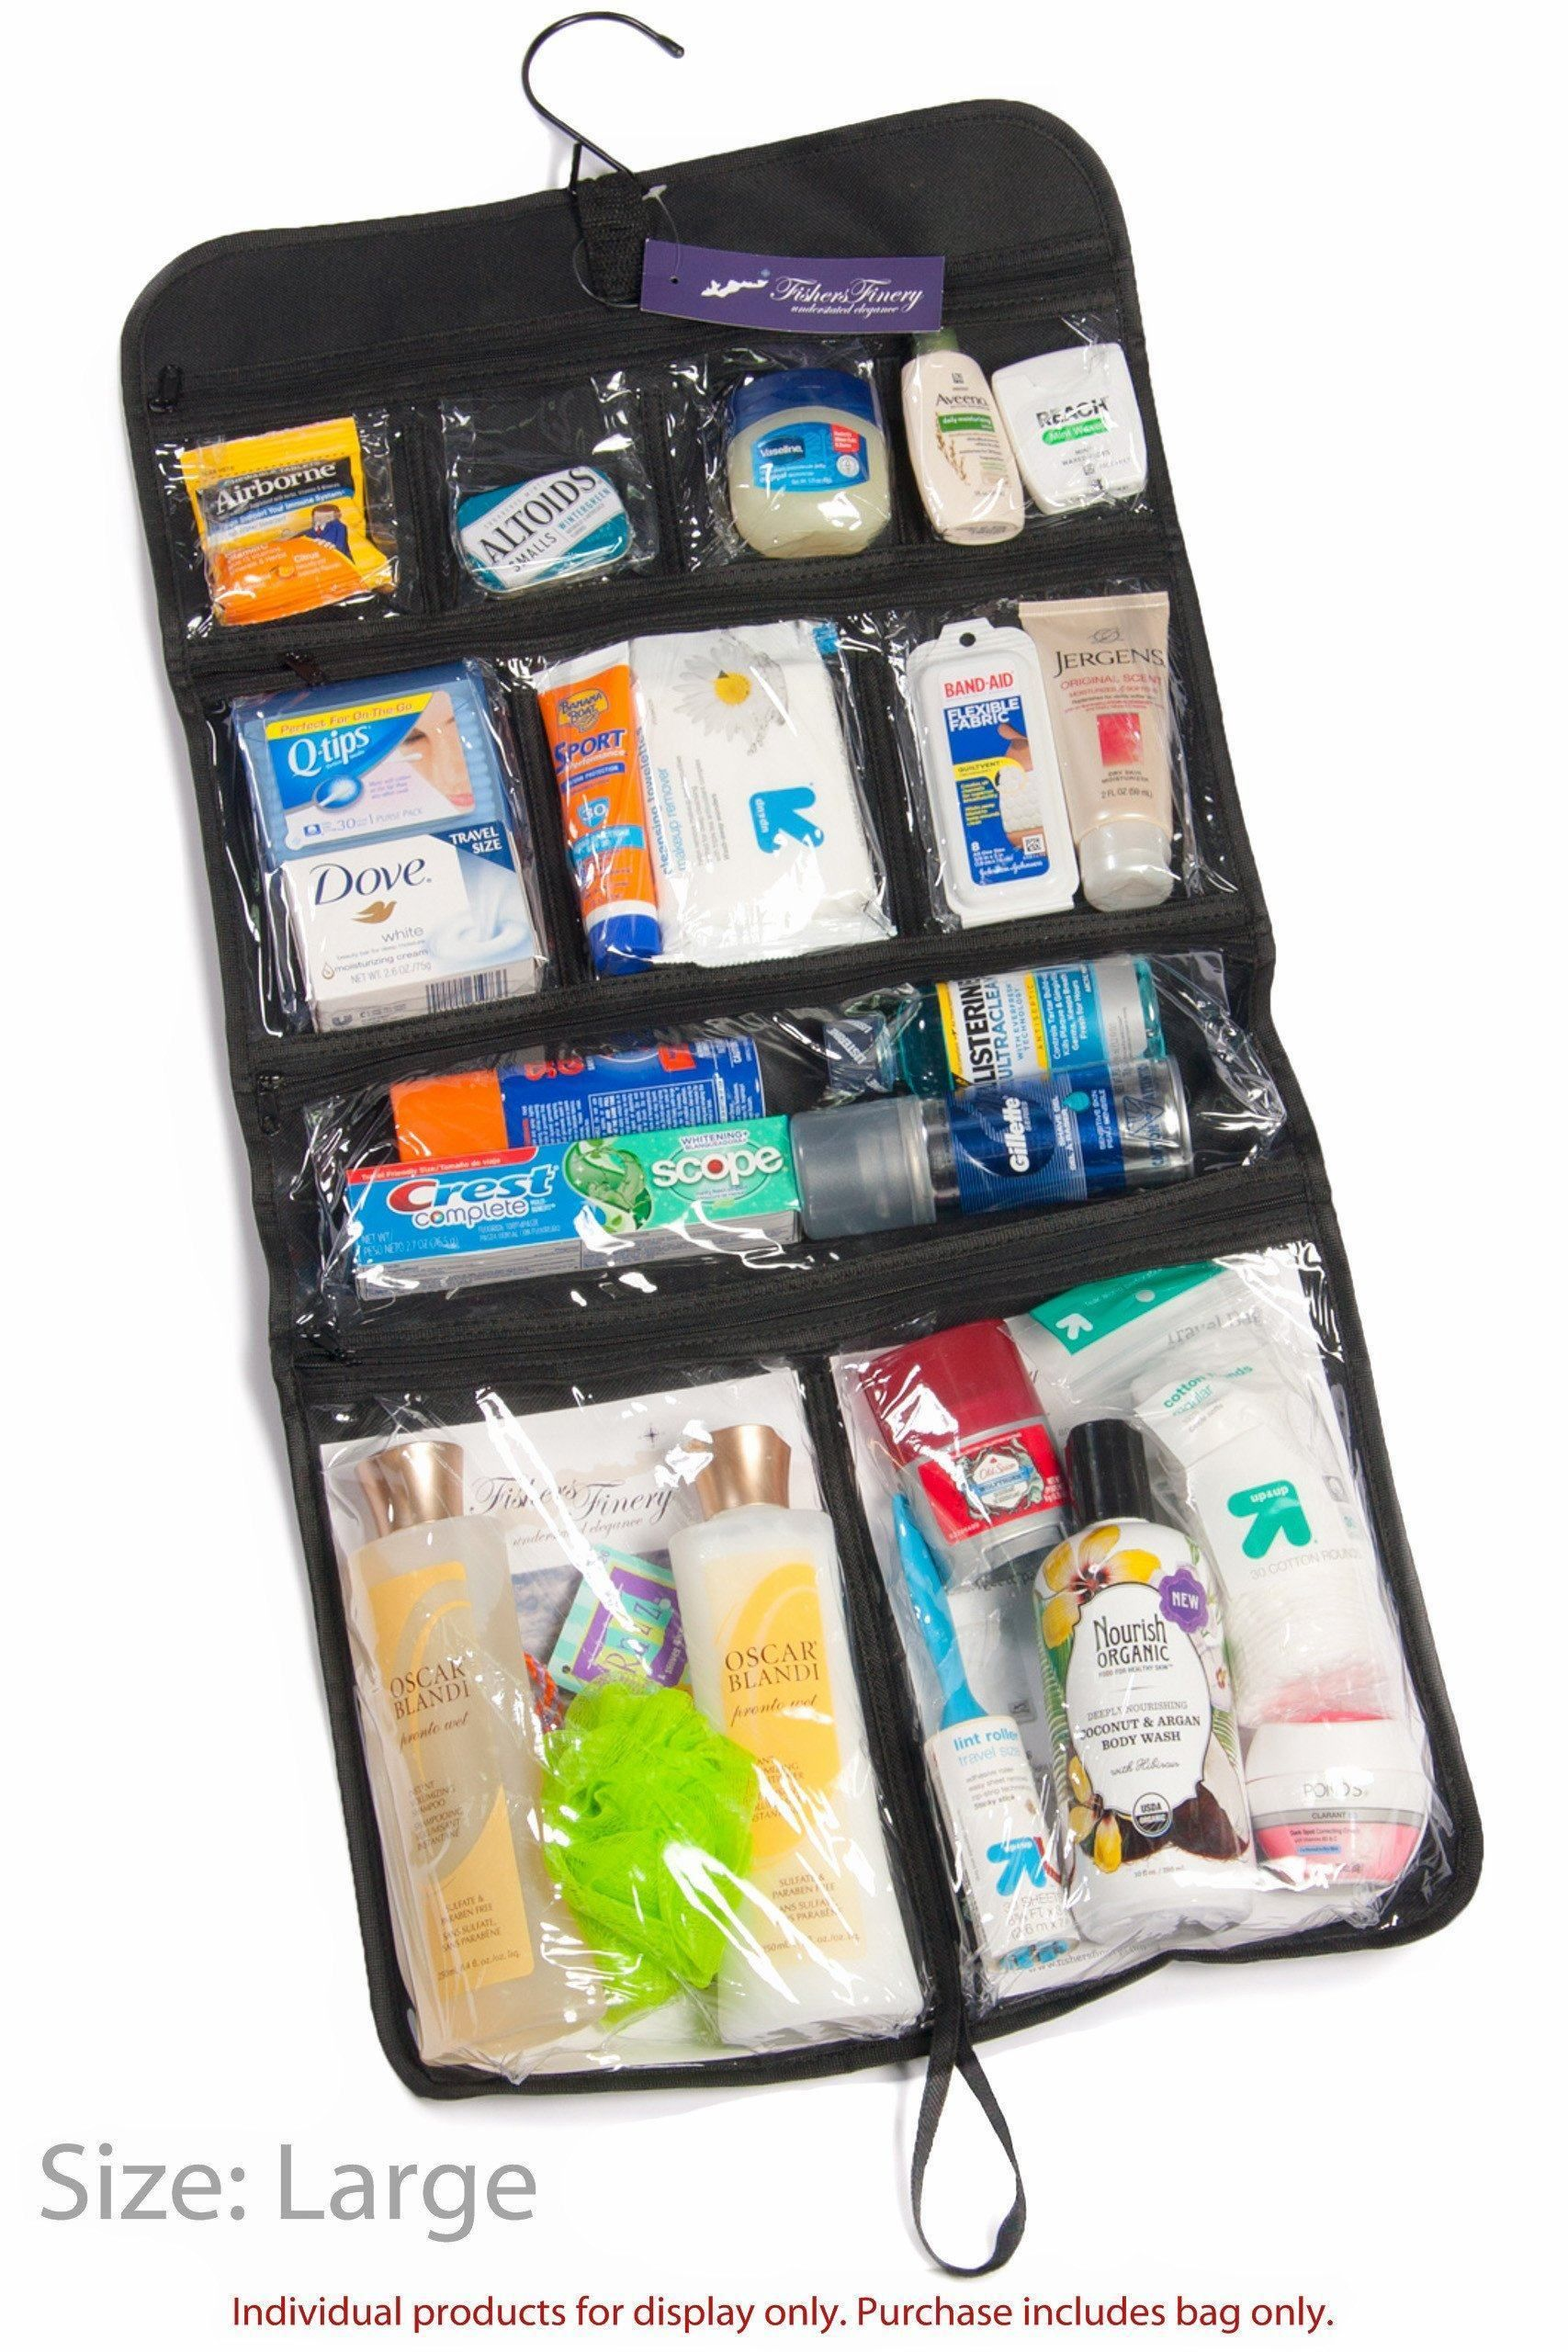 Home Luggage - Expert Traveler Hanging Toiletry Bag - Designed By Travelers  For Travelers c45ba6bd387f9